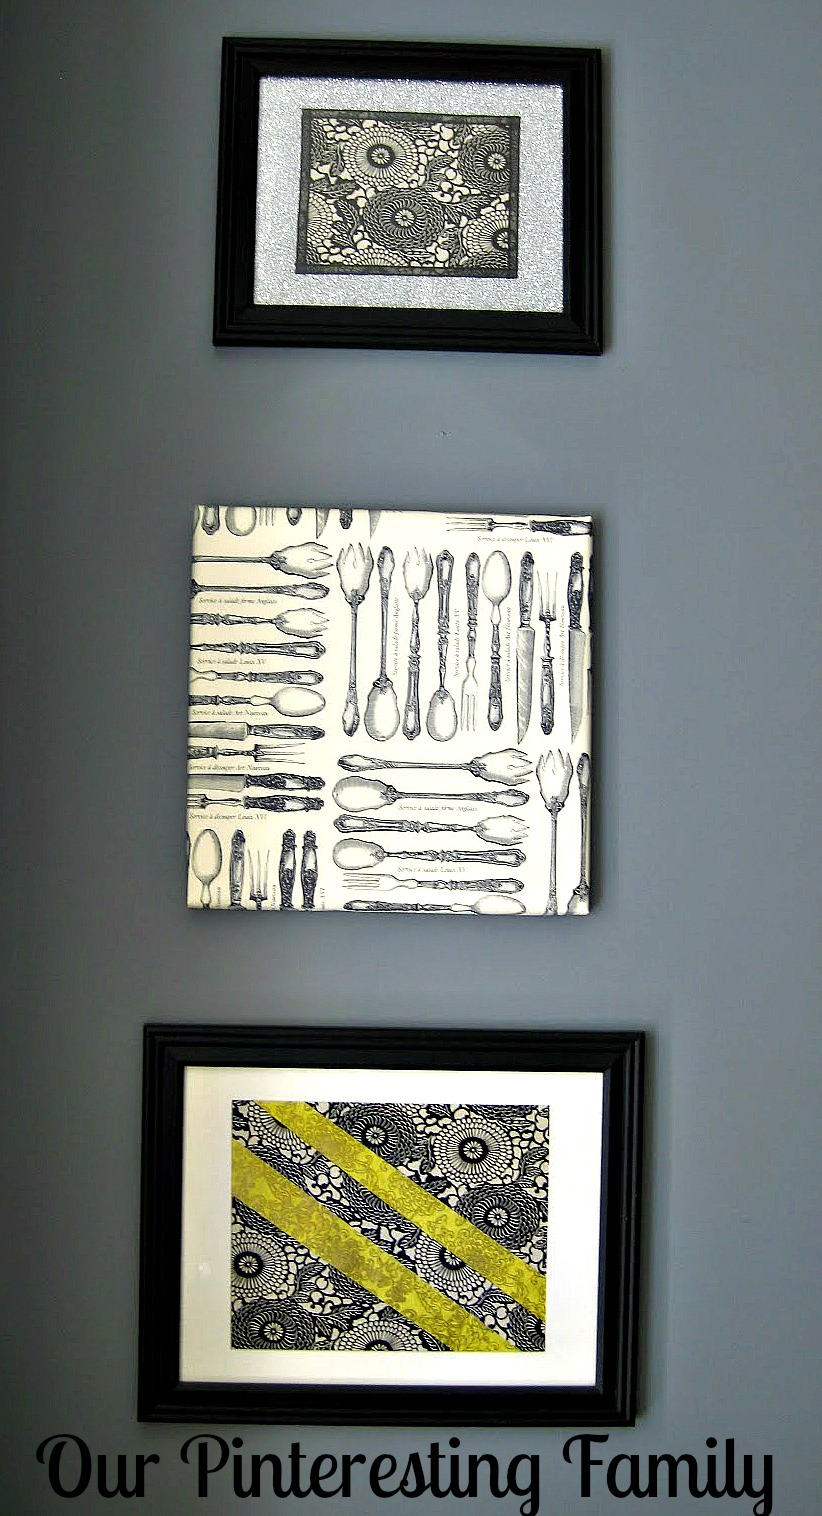 Wall Art Using Paper : Our ing family wall decor using paper by amy chris